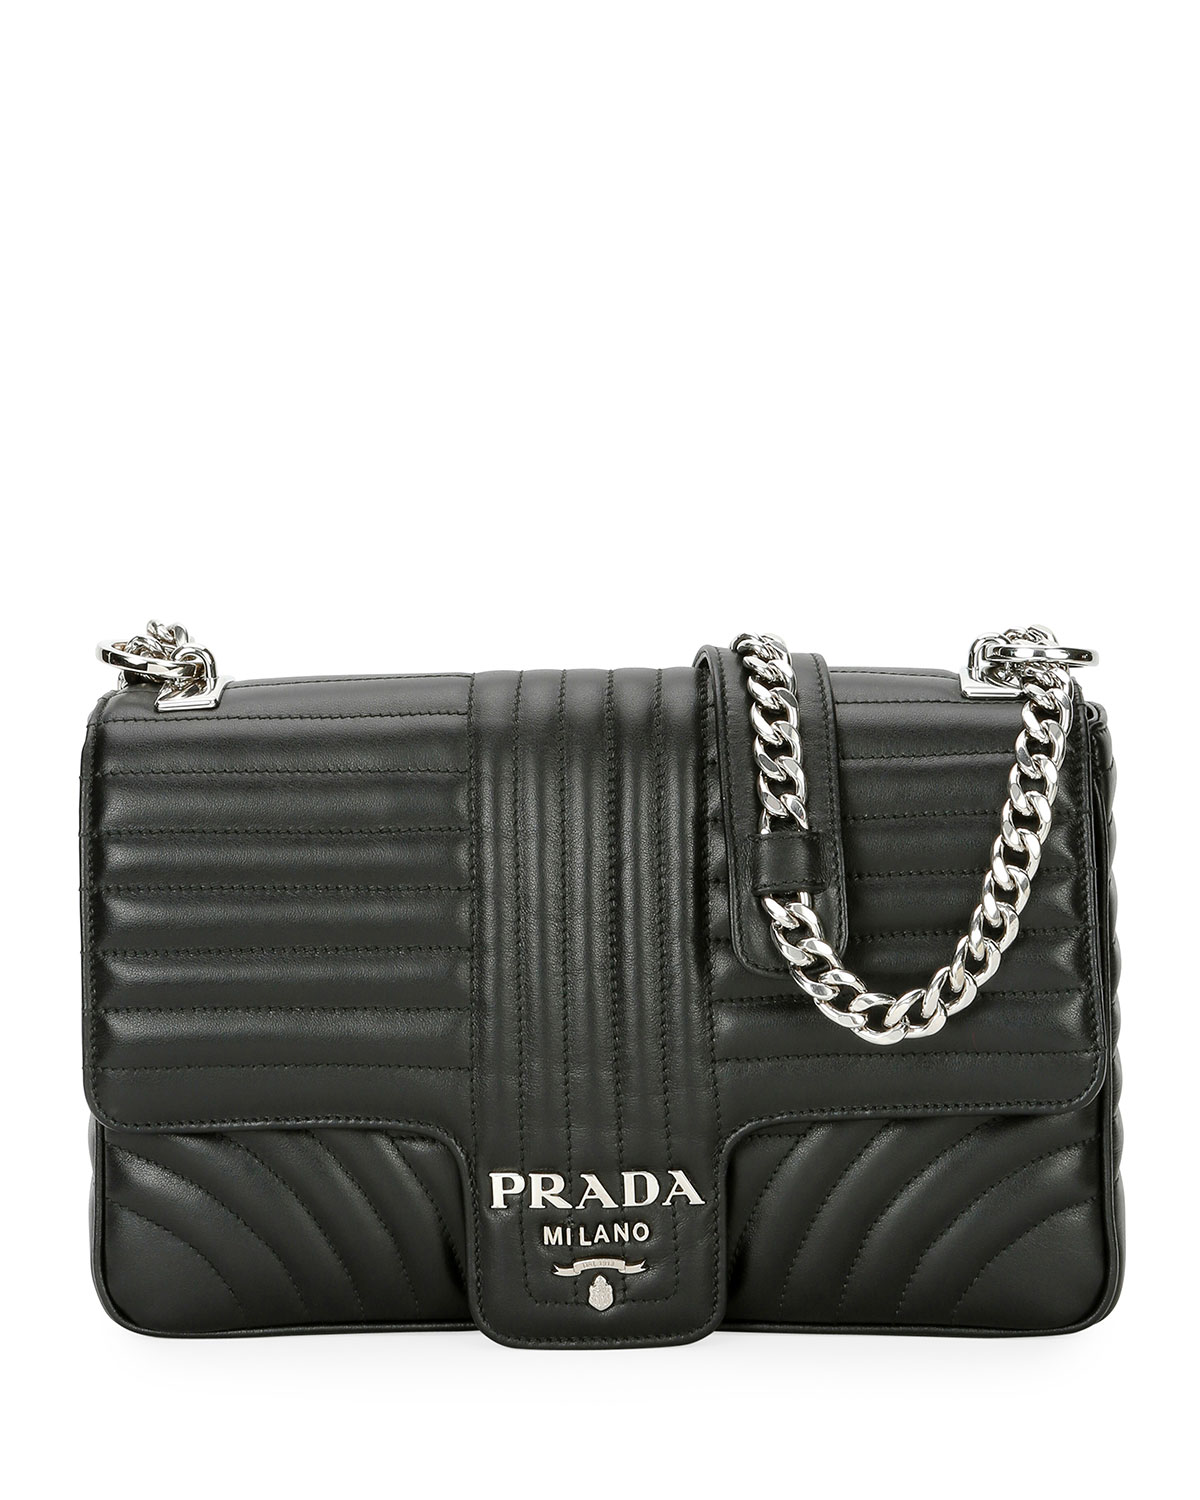 Prada Large Diagramme Shoulder Bag W   Chain Strap